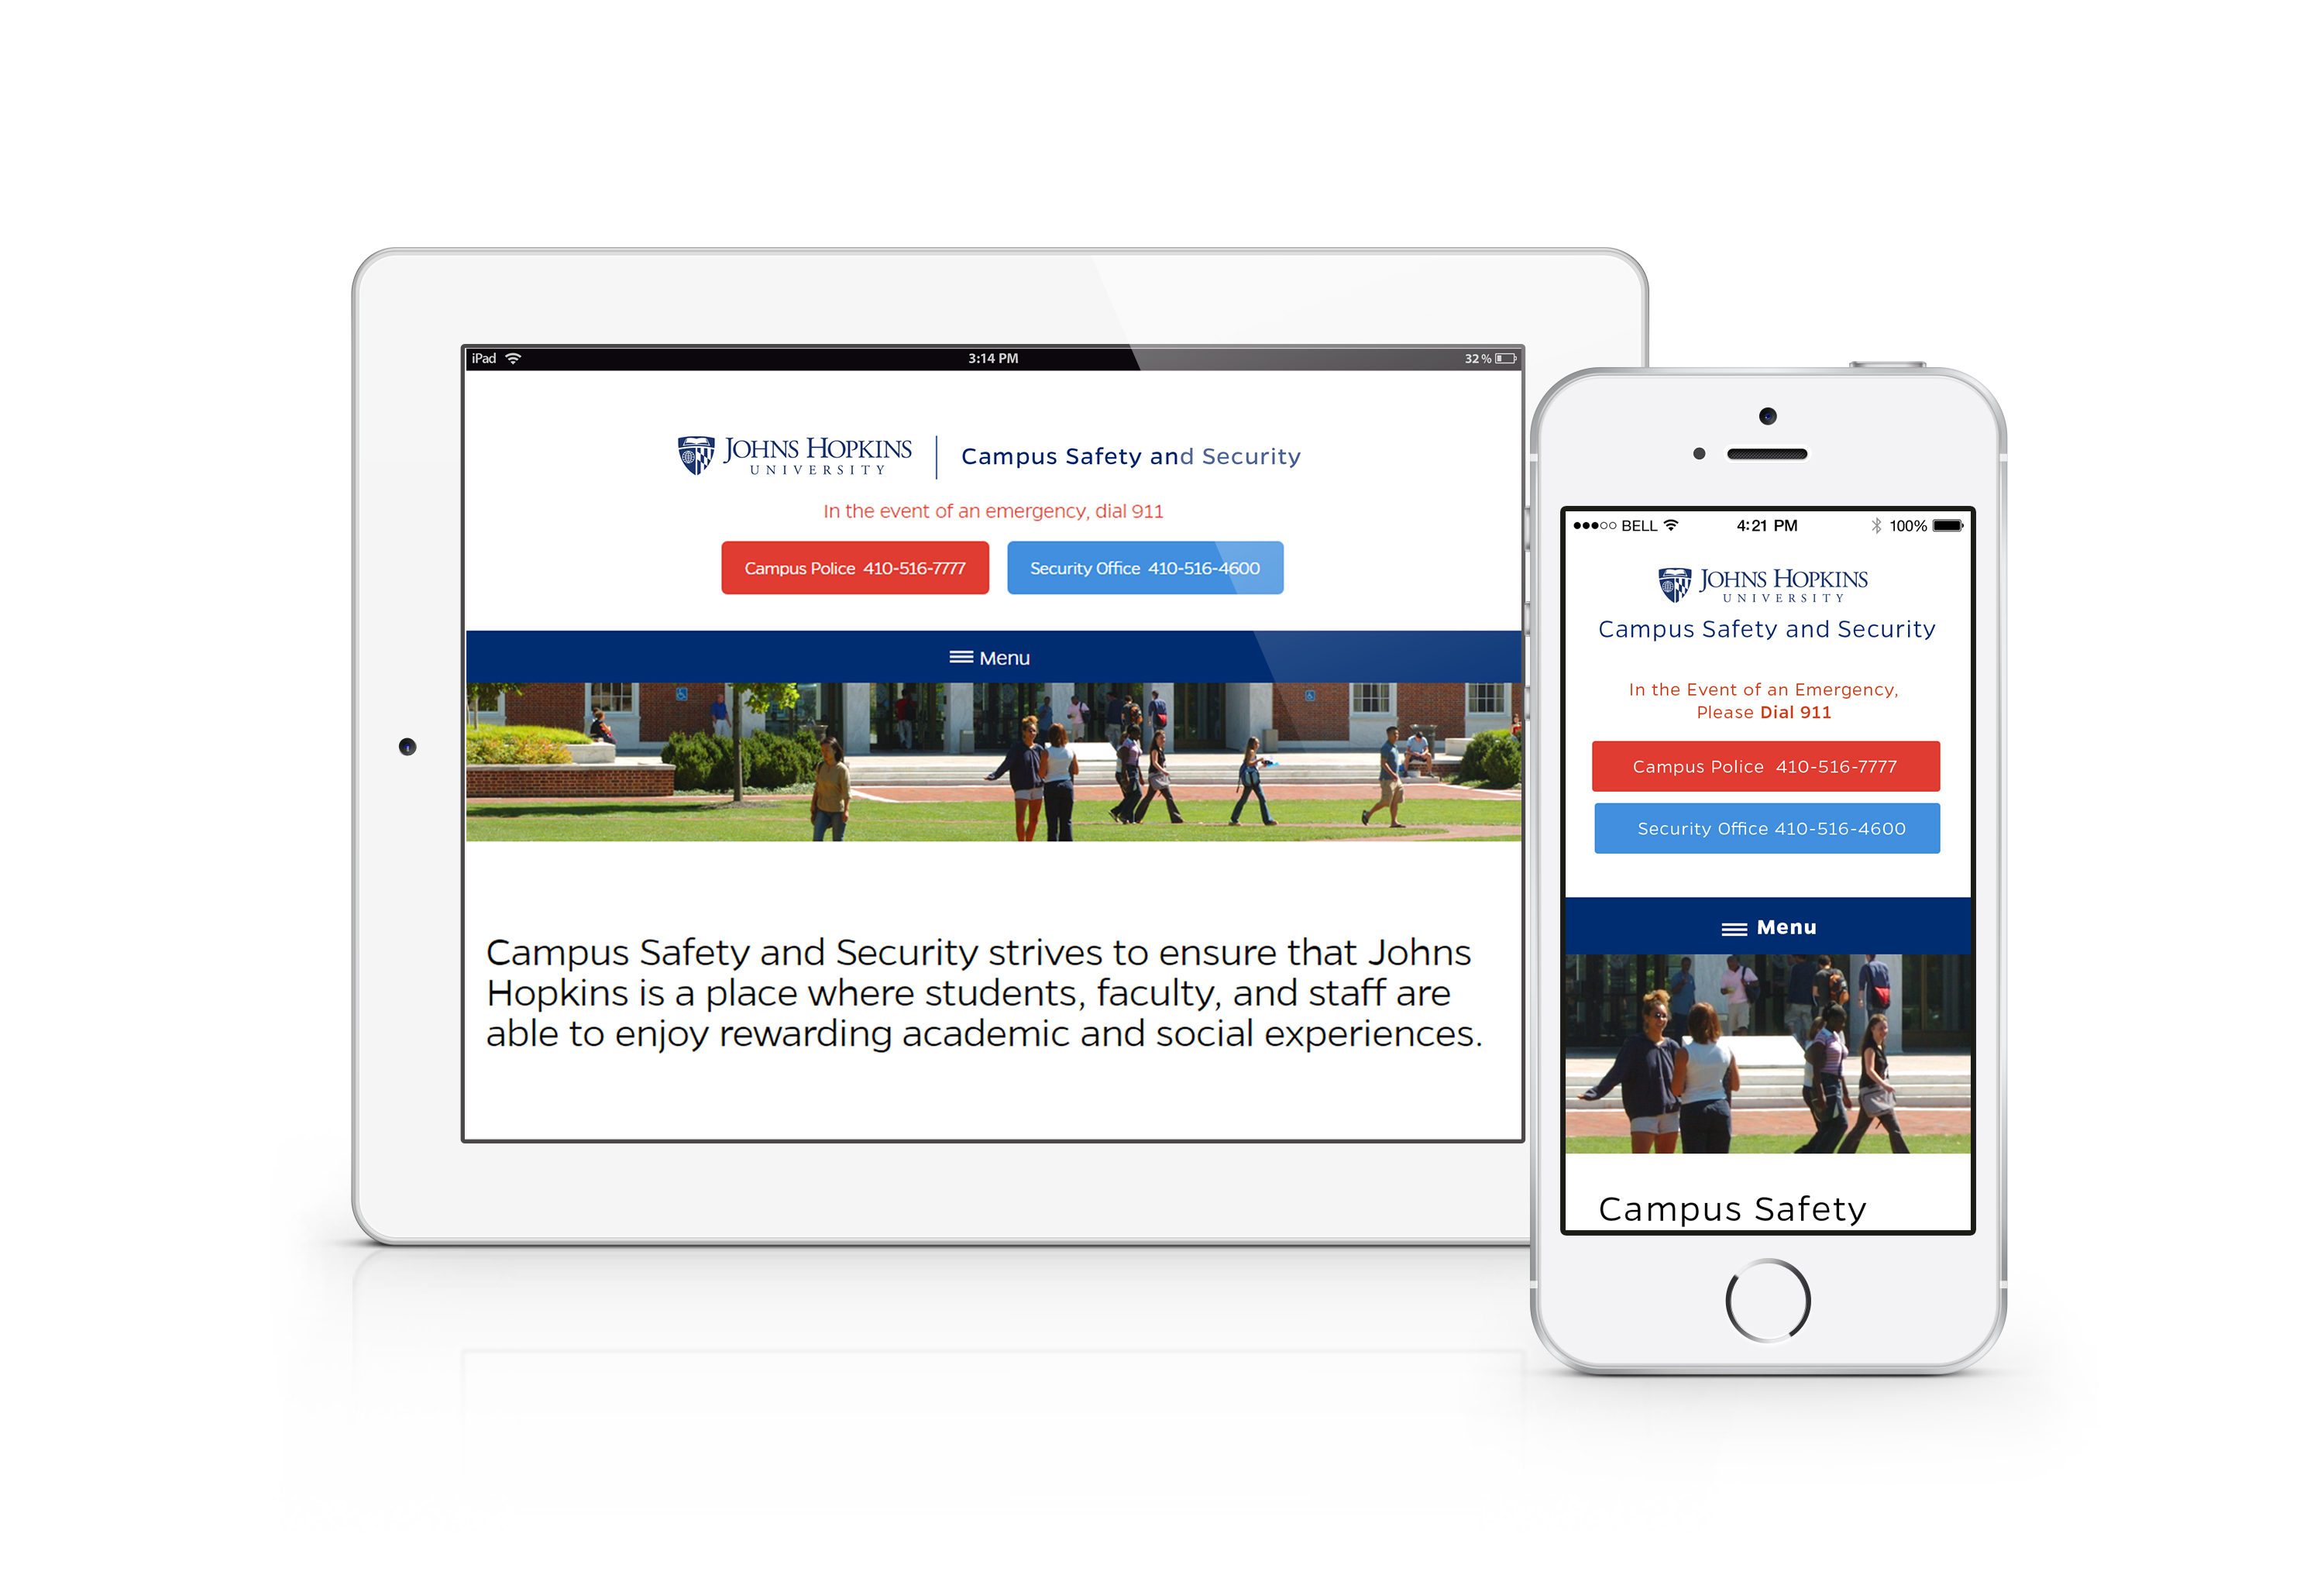 JHU Campus Safety and Security website on desktop and mobile